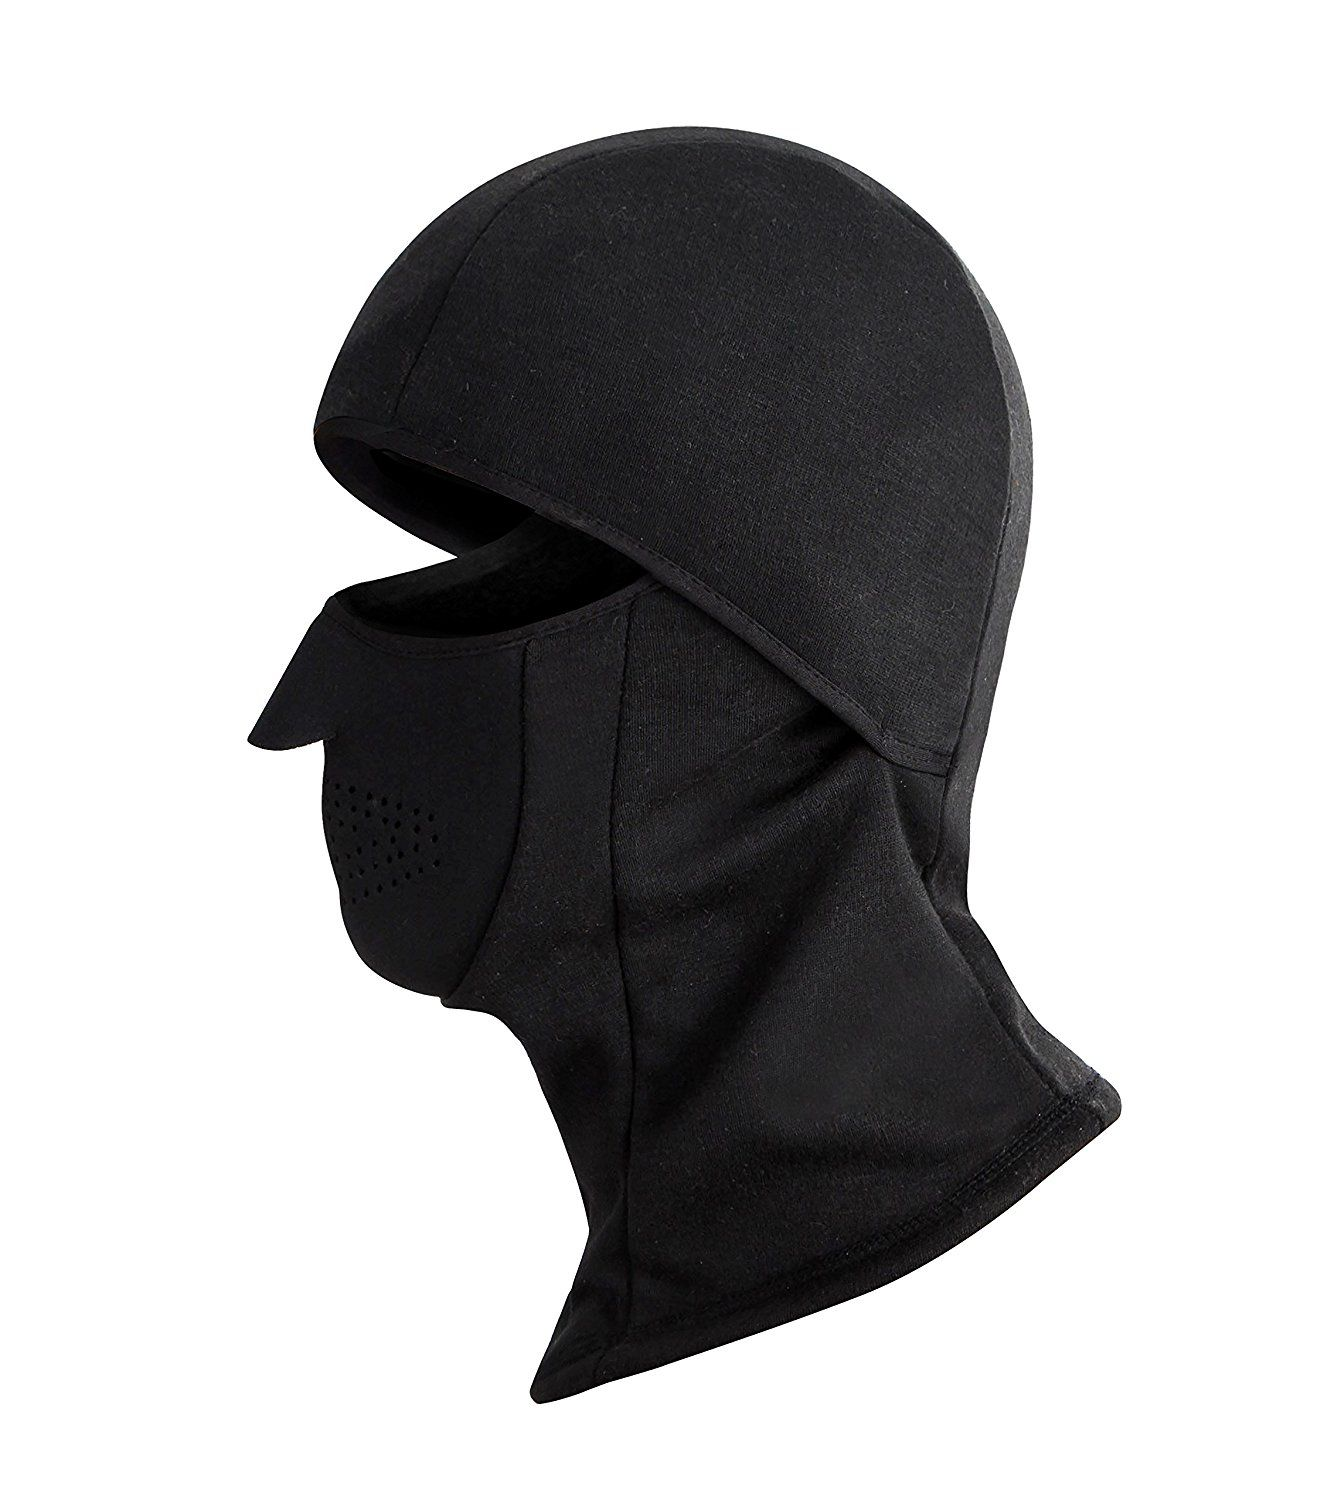 The 8 Best Balaclavas to Buy in 2018